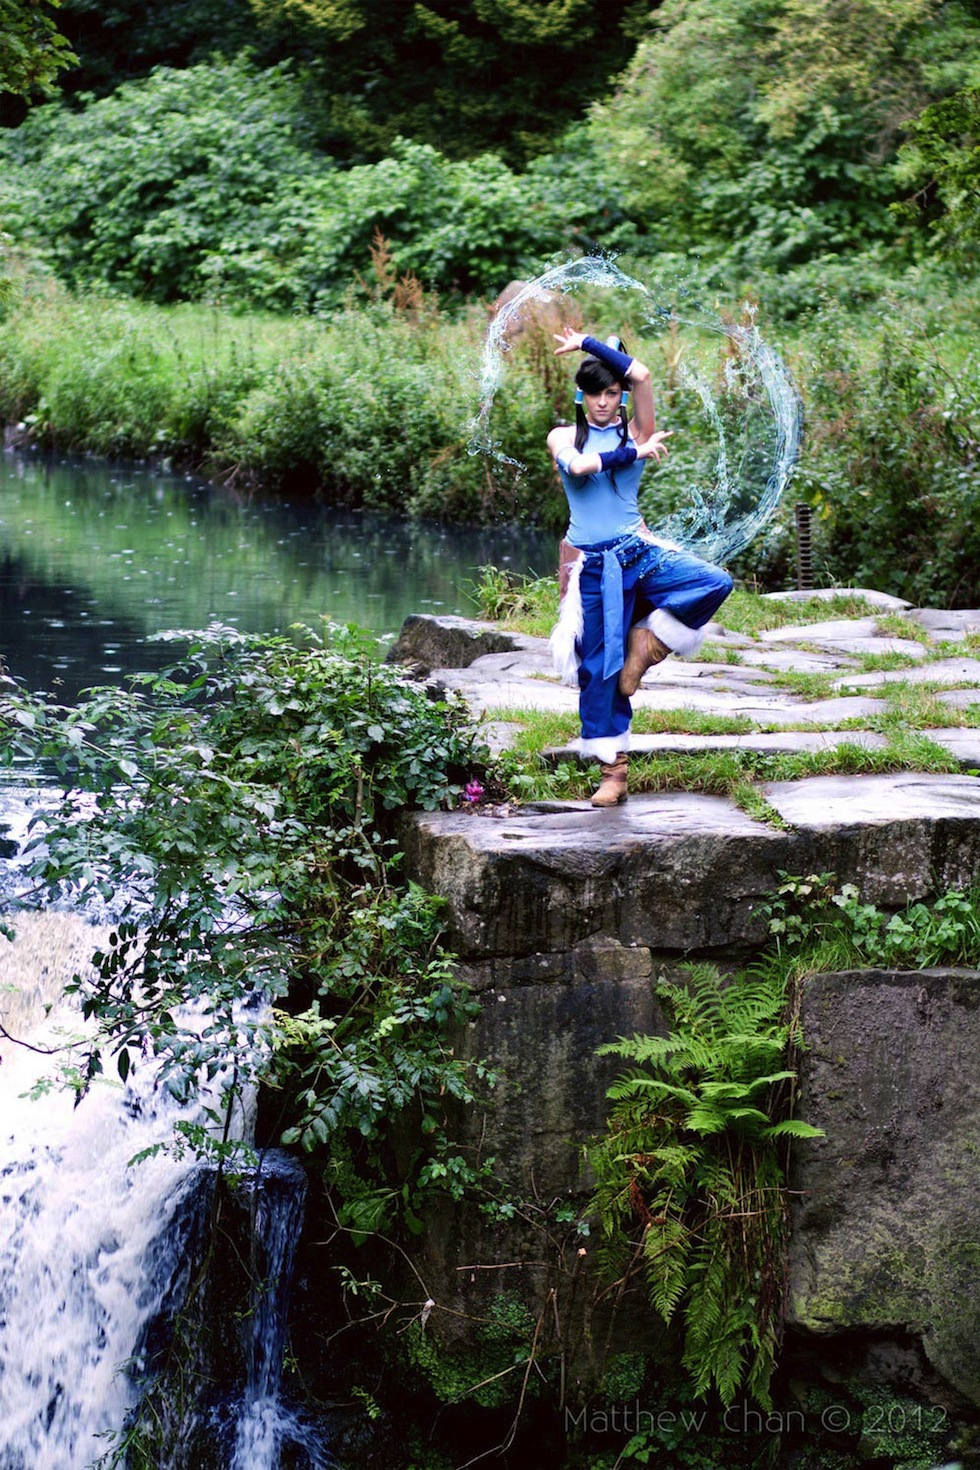 korra-cosplayer-welcome-to-my-world-VXI